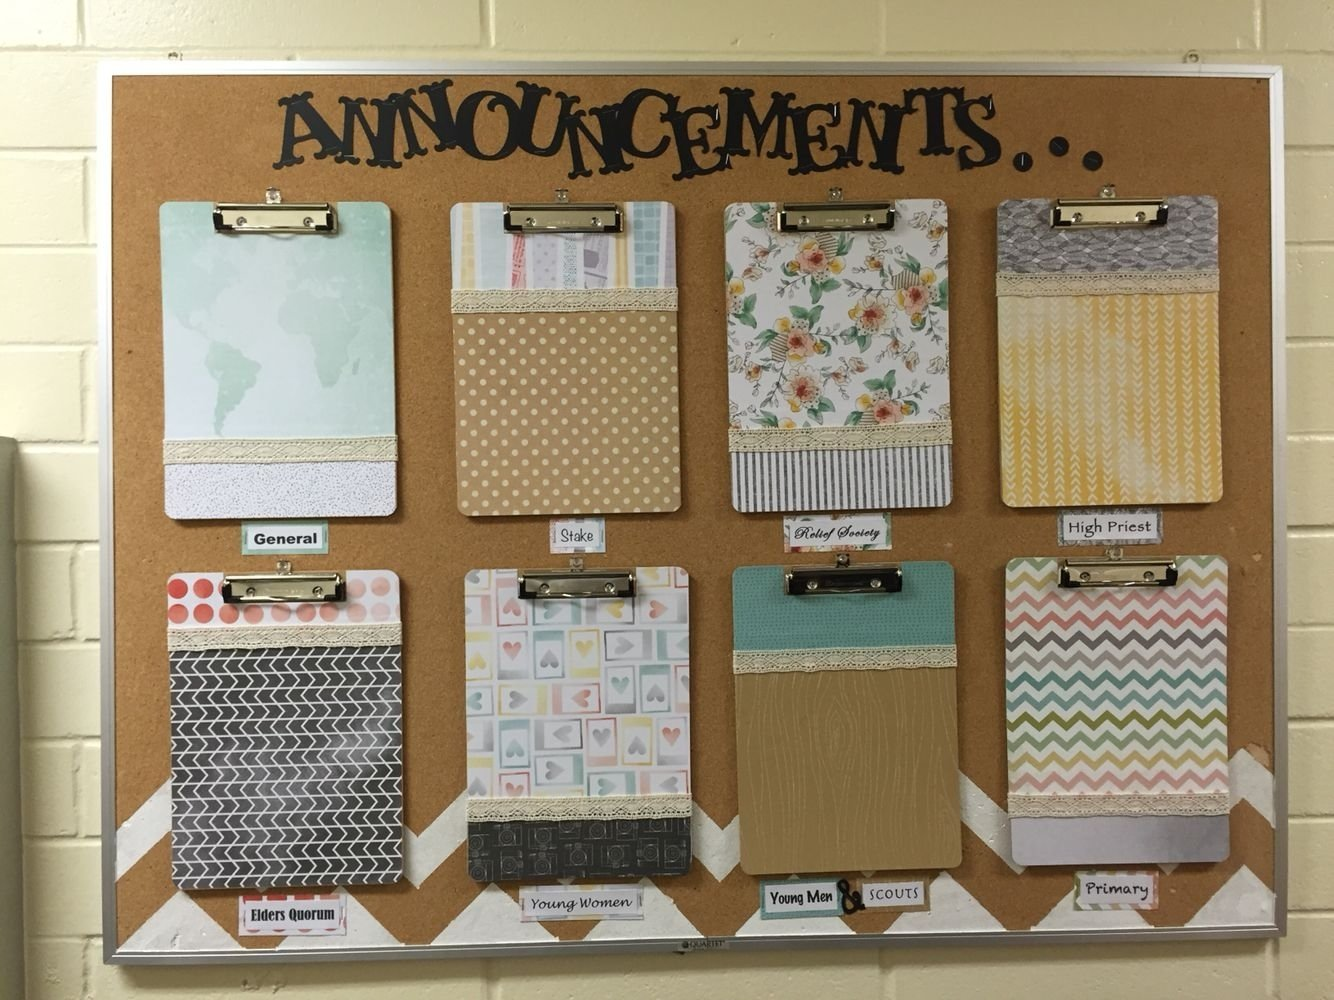 lds church bulletin board. church announcements. neat and organized